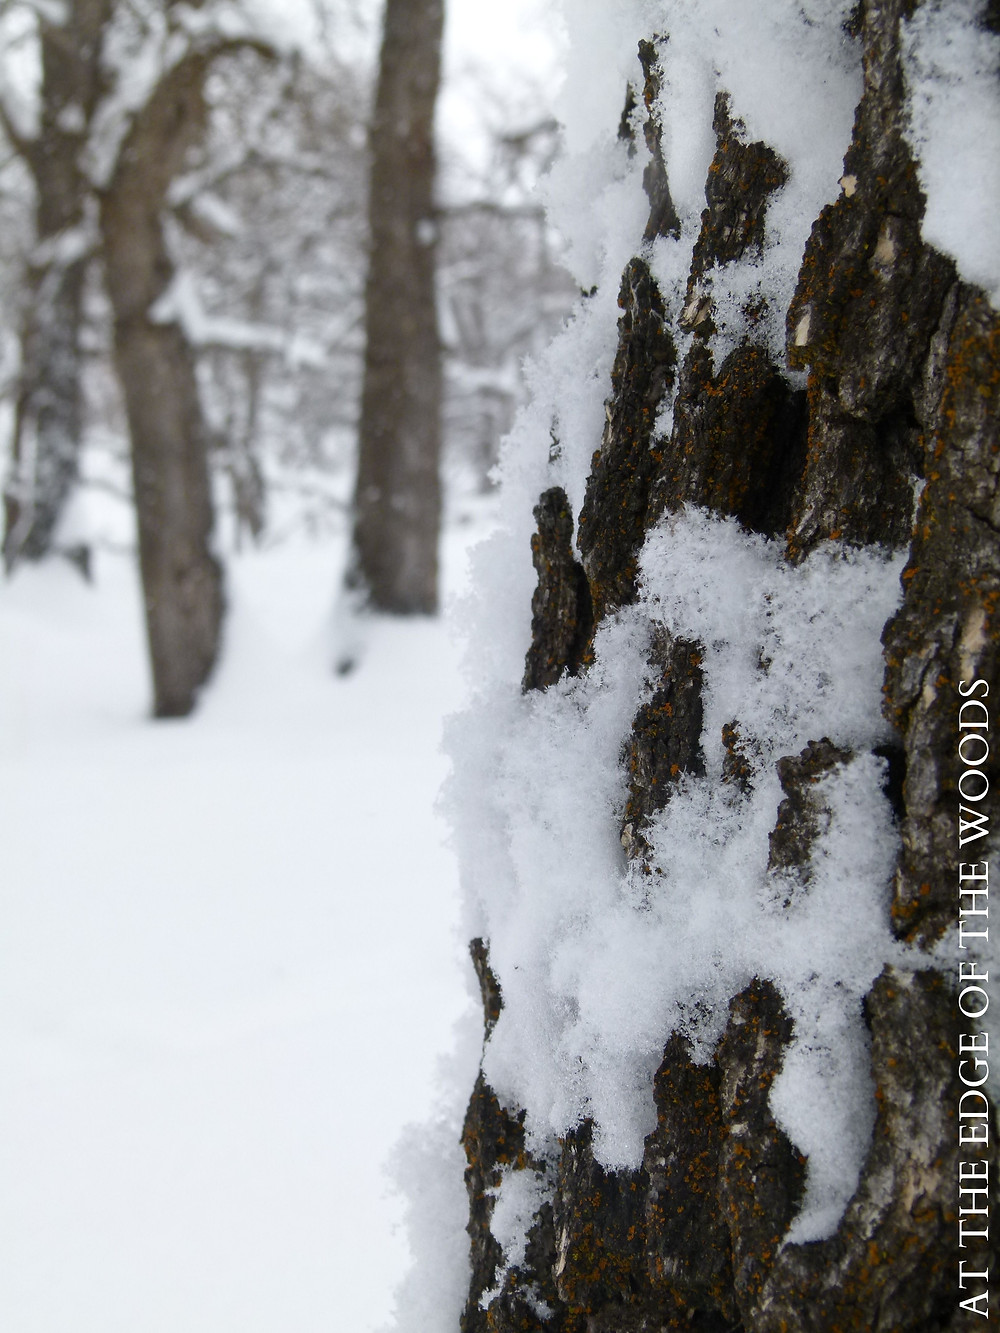 snowflakes cling to the tree bark